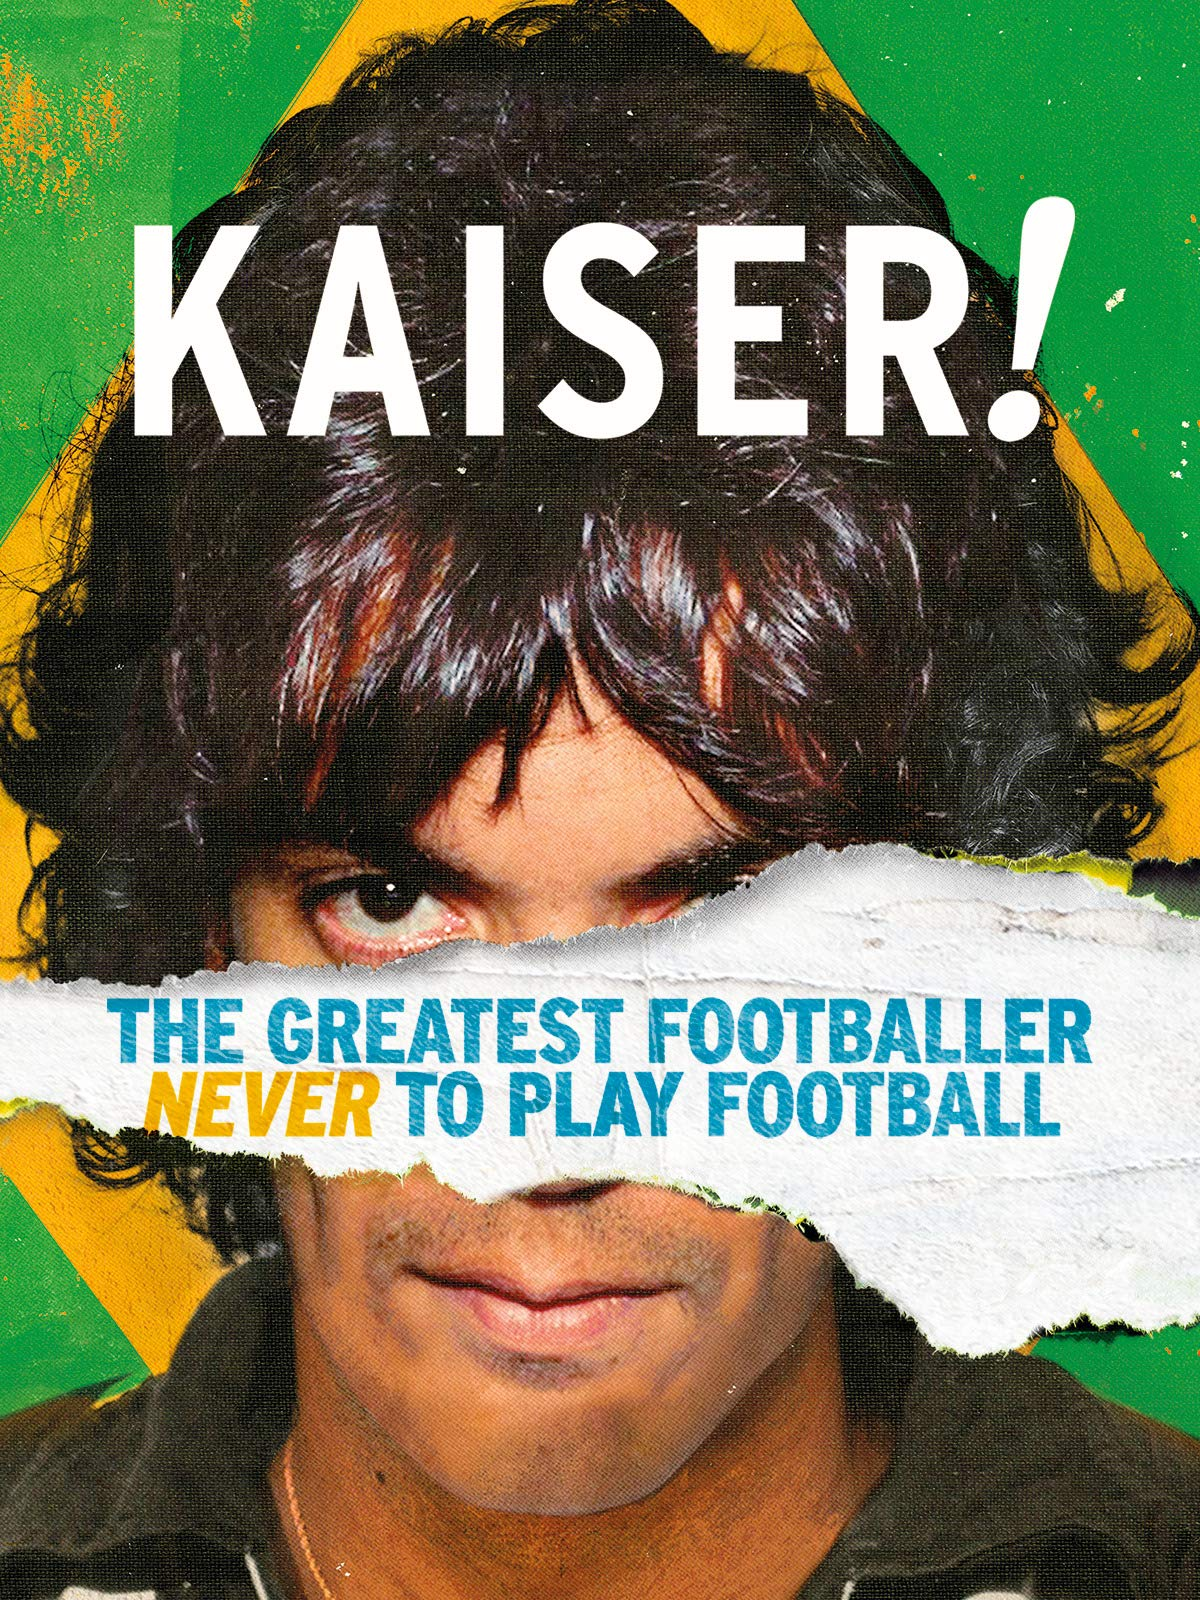 Kaiser! The Greatest Footballer Never to Play Football